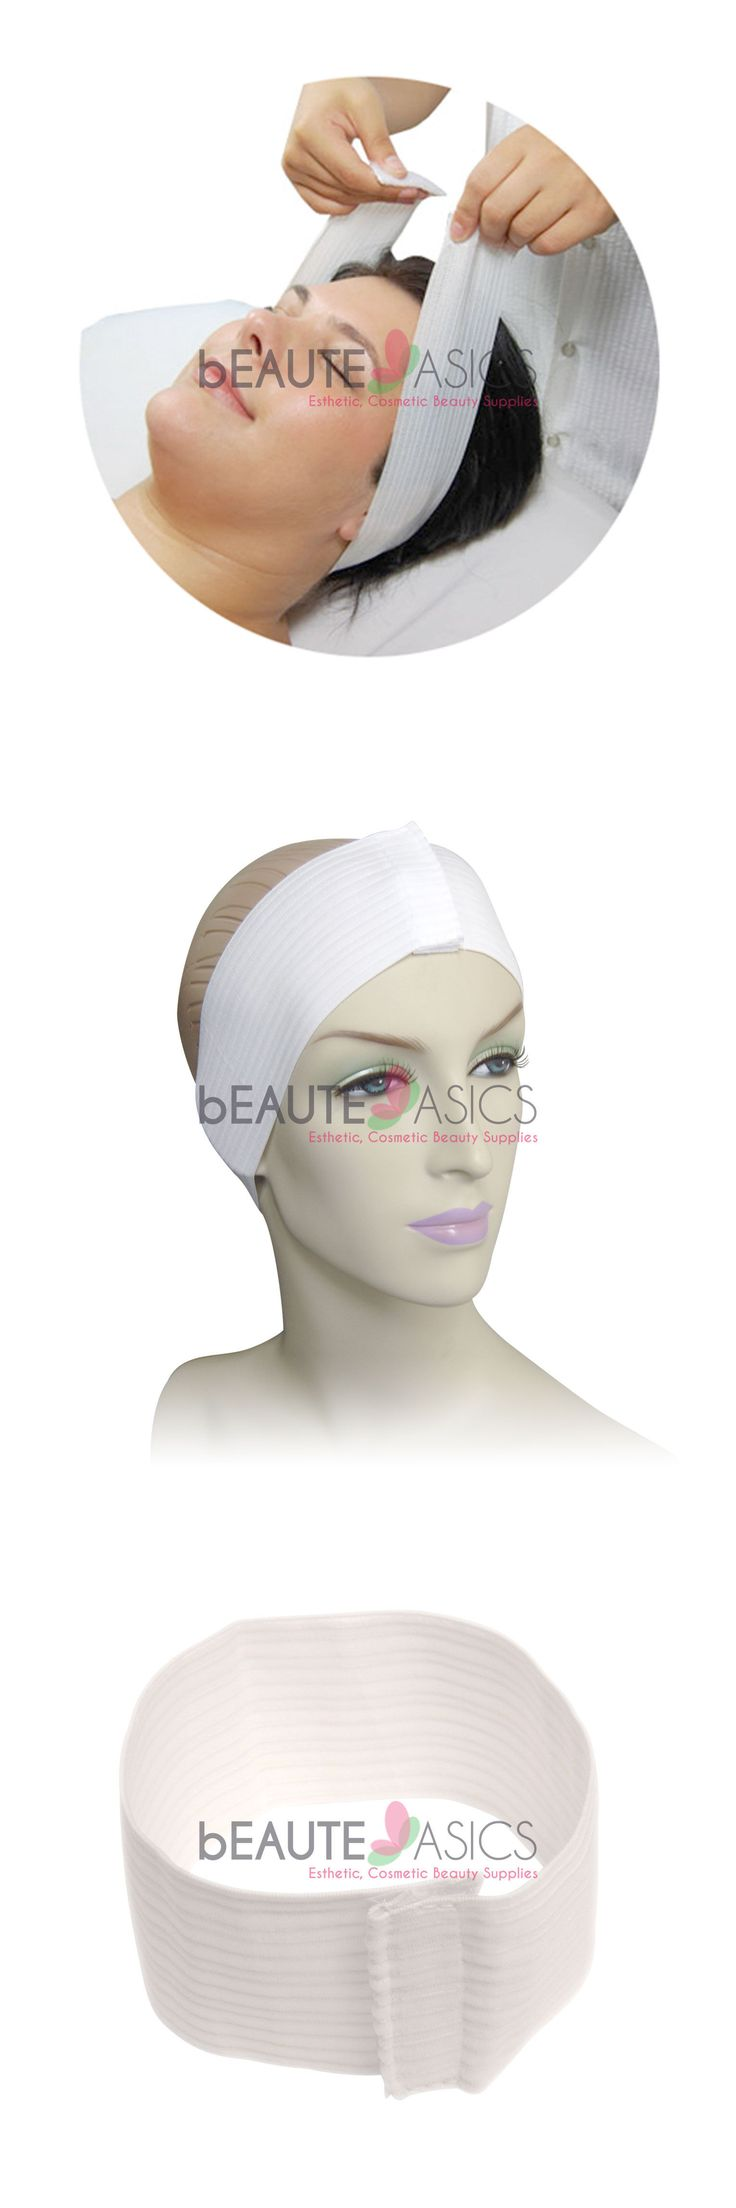 wholesale Skin Care: 480 Disposable Stretch Spa Headband With Hook And Loop Fastener - #Ah2201x10 BUY IT NOW ONLY: $159.95